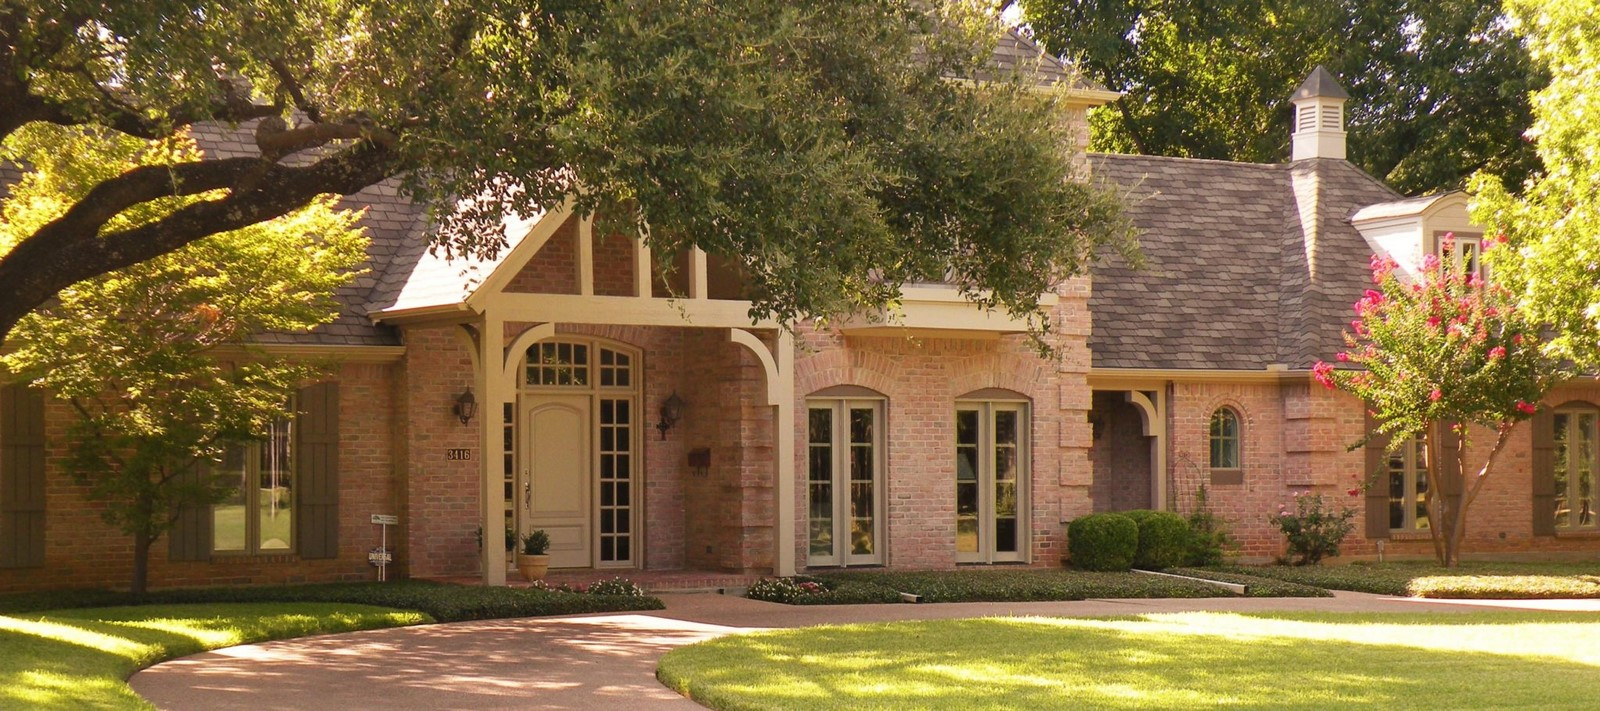 Architects in Fort Worth - Top 55 Architects in Fort Worth - Sheet43